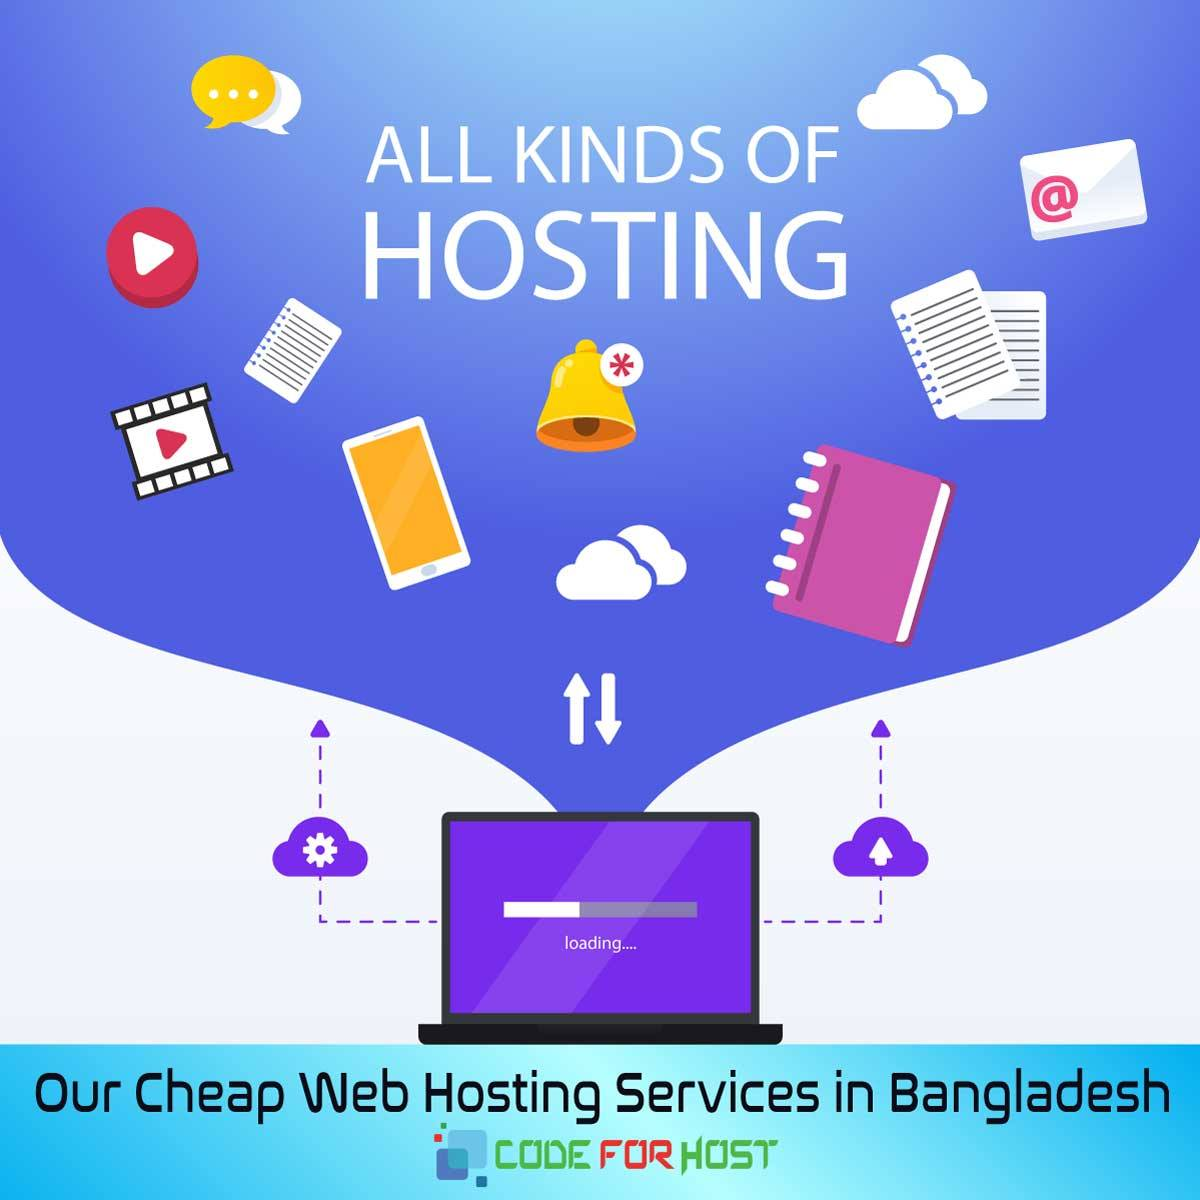 Cheap Web Hosting Services in Bangladesh